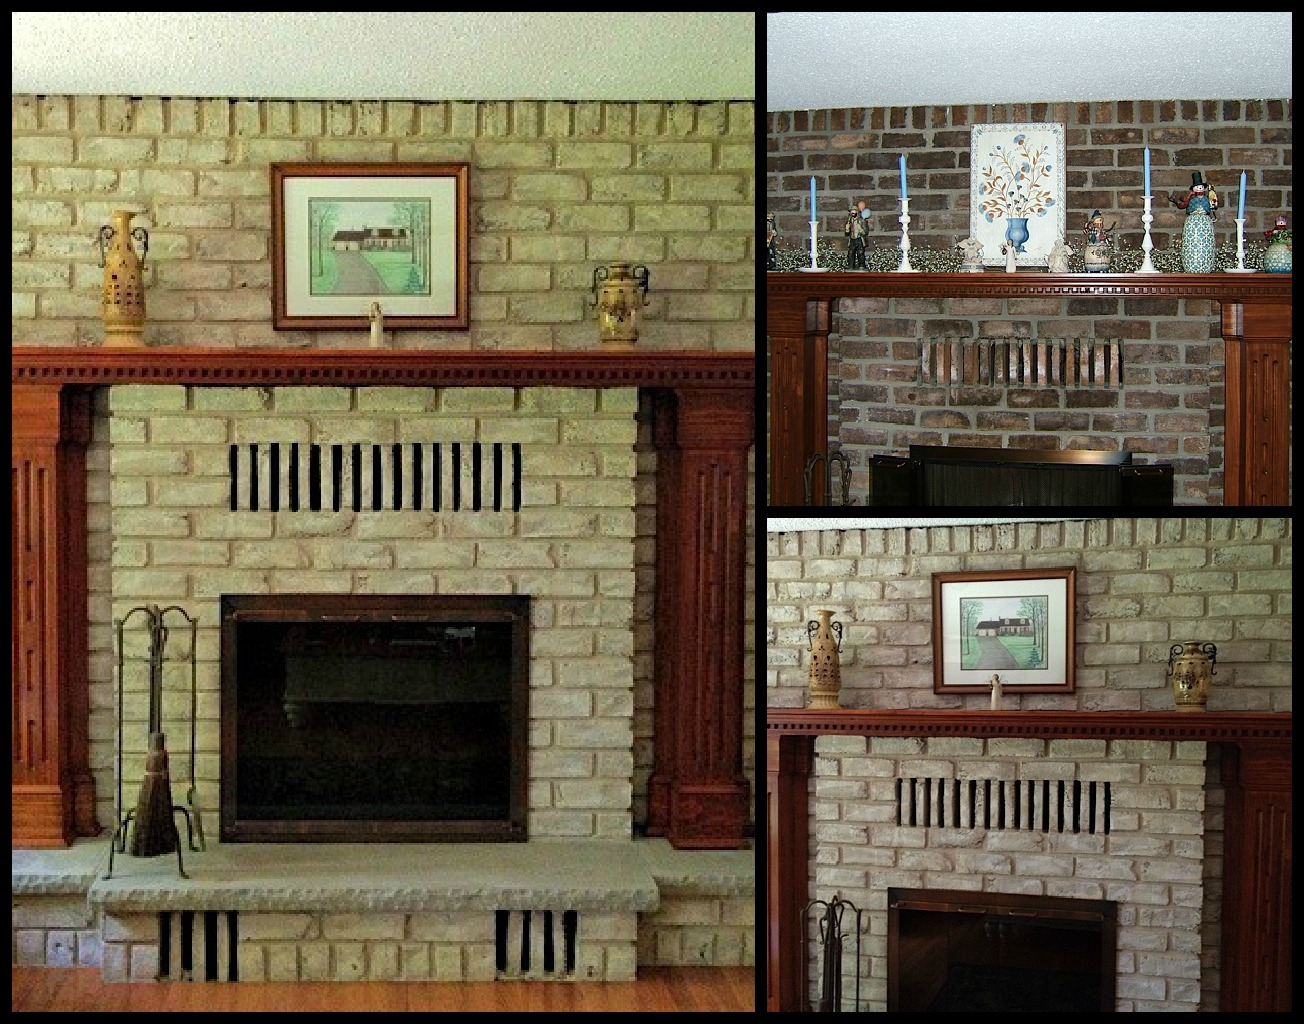 Fireplace Decorating: Beautiful DIY Ideas for Your Brick Fireplace